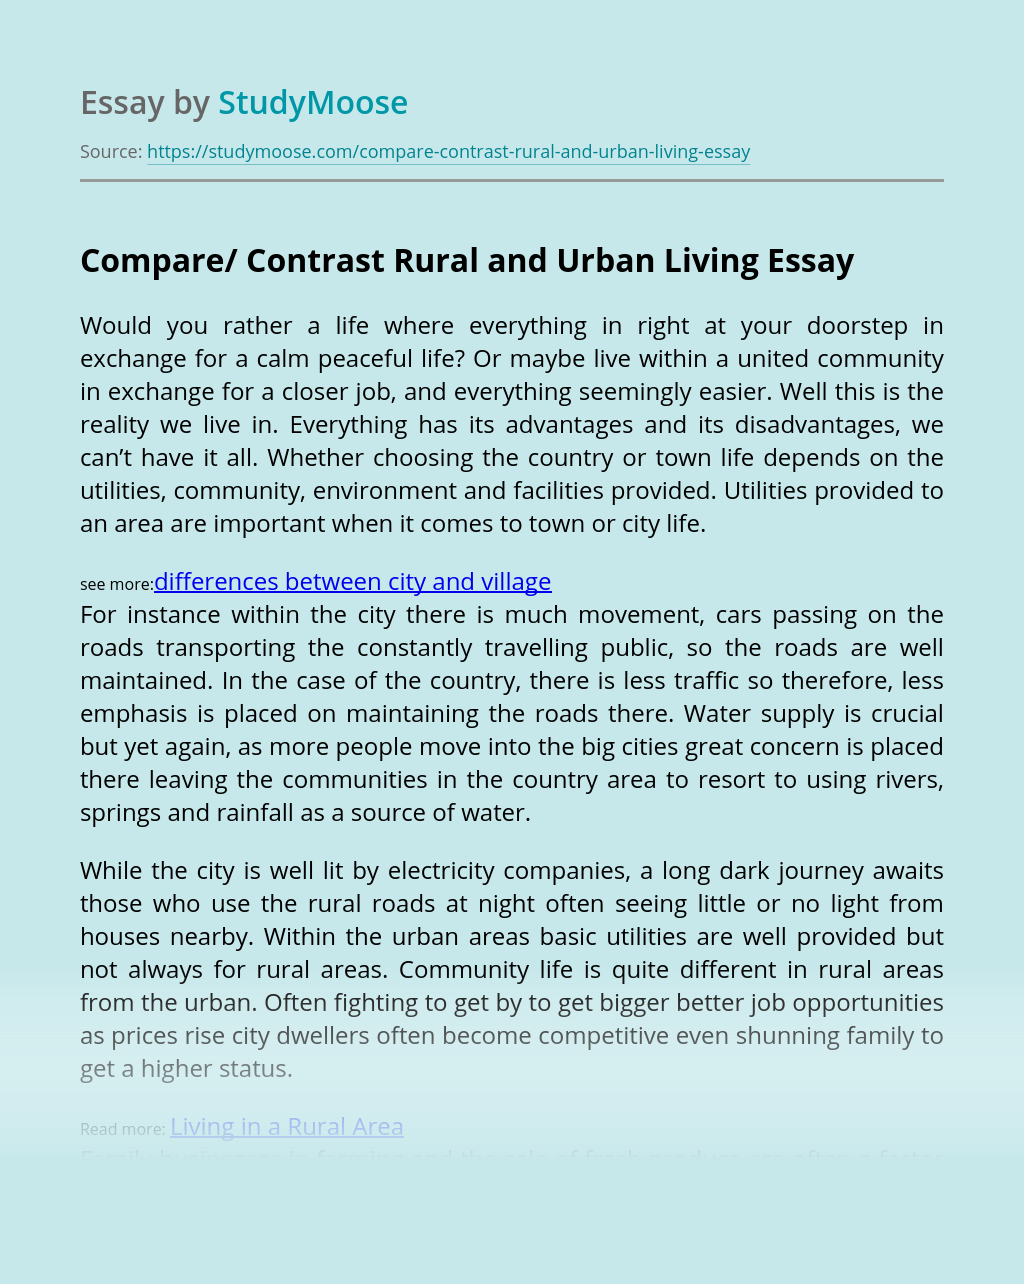 Compare/ Contrast Rural and Urban Living